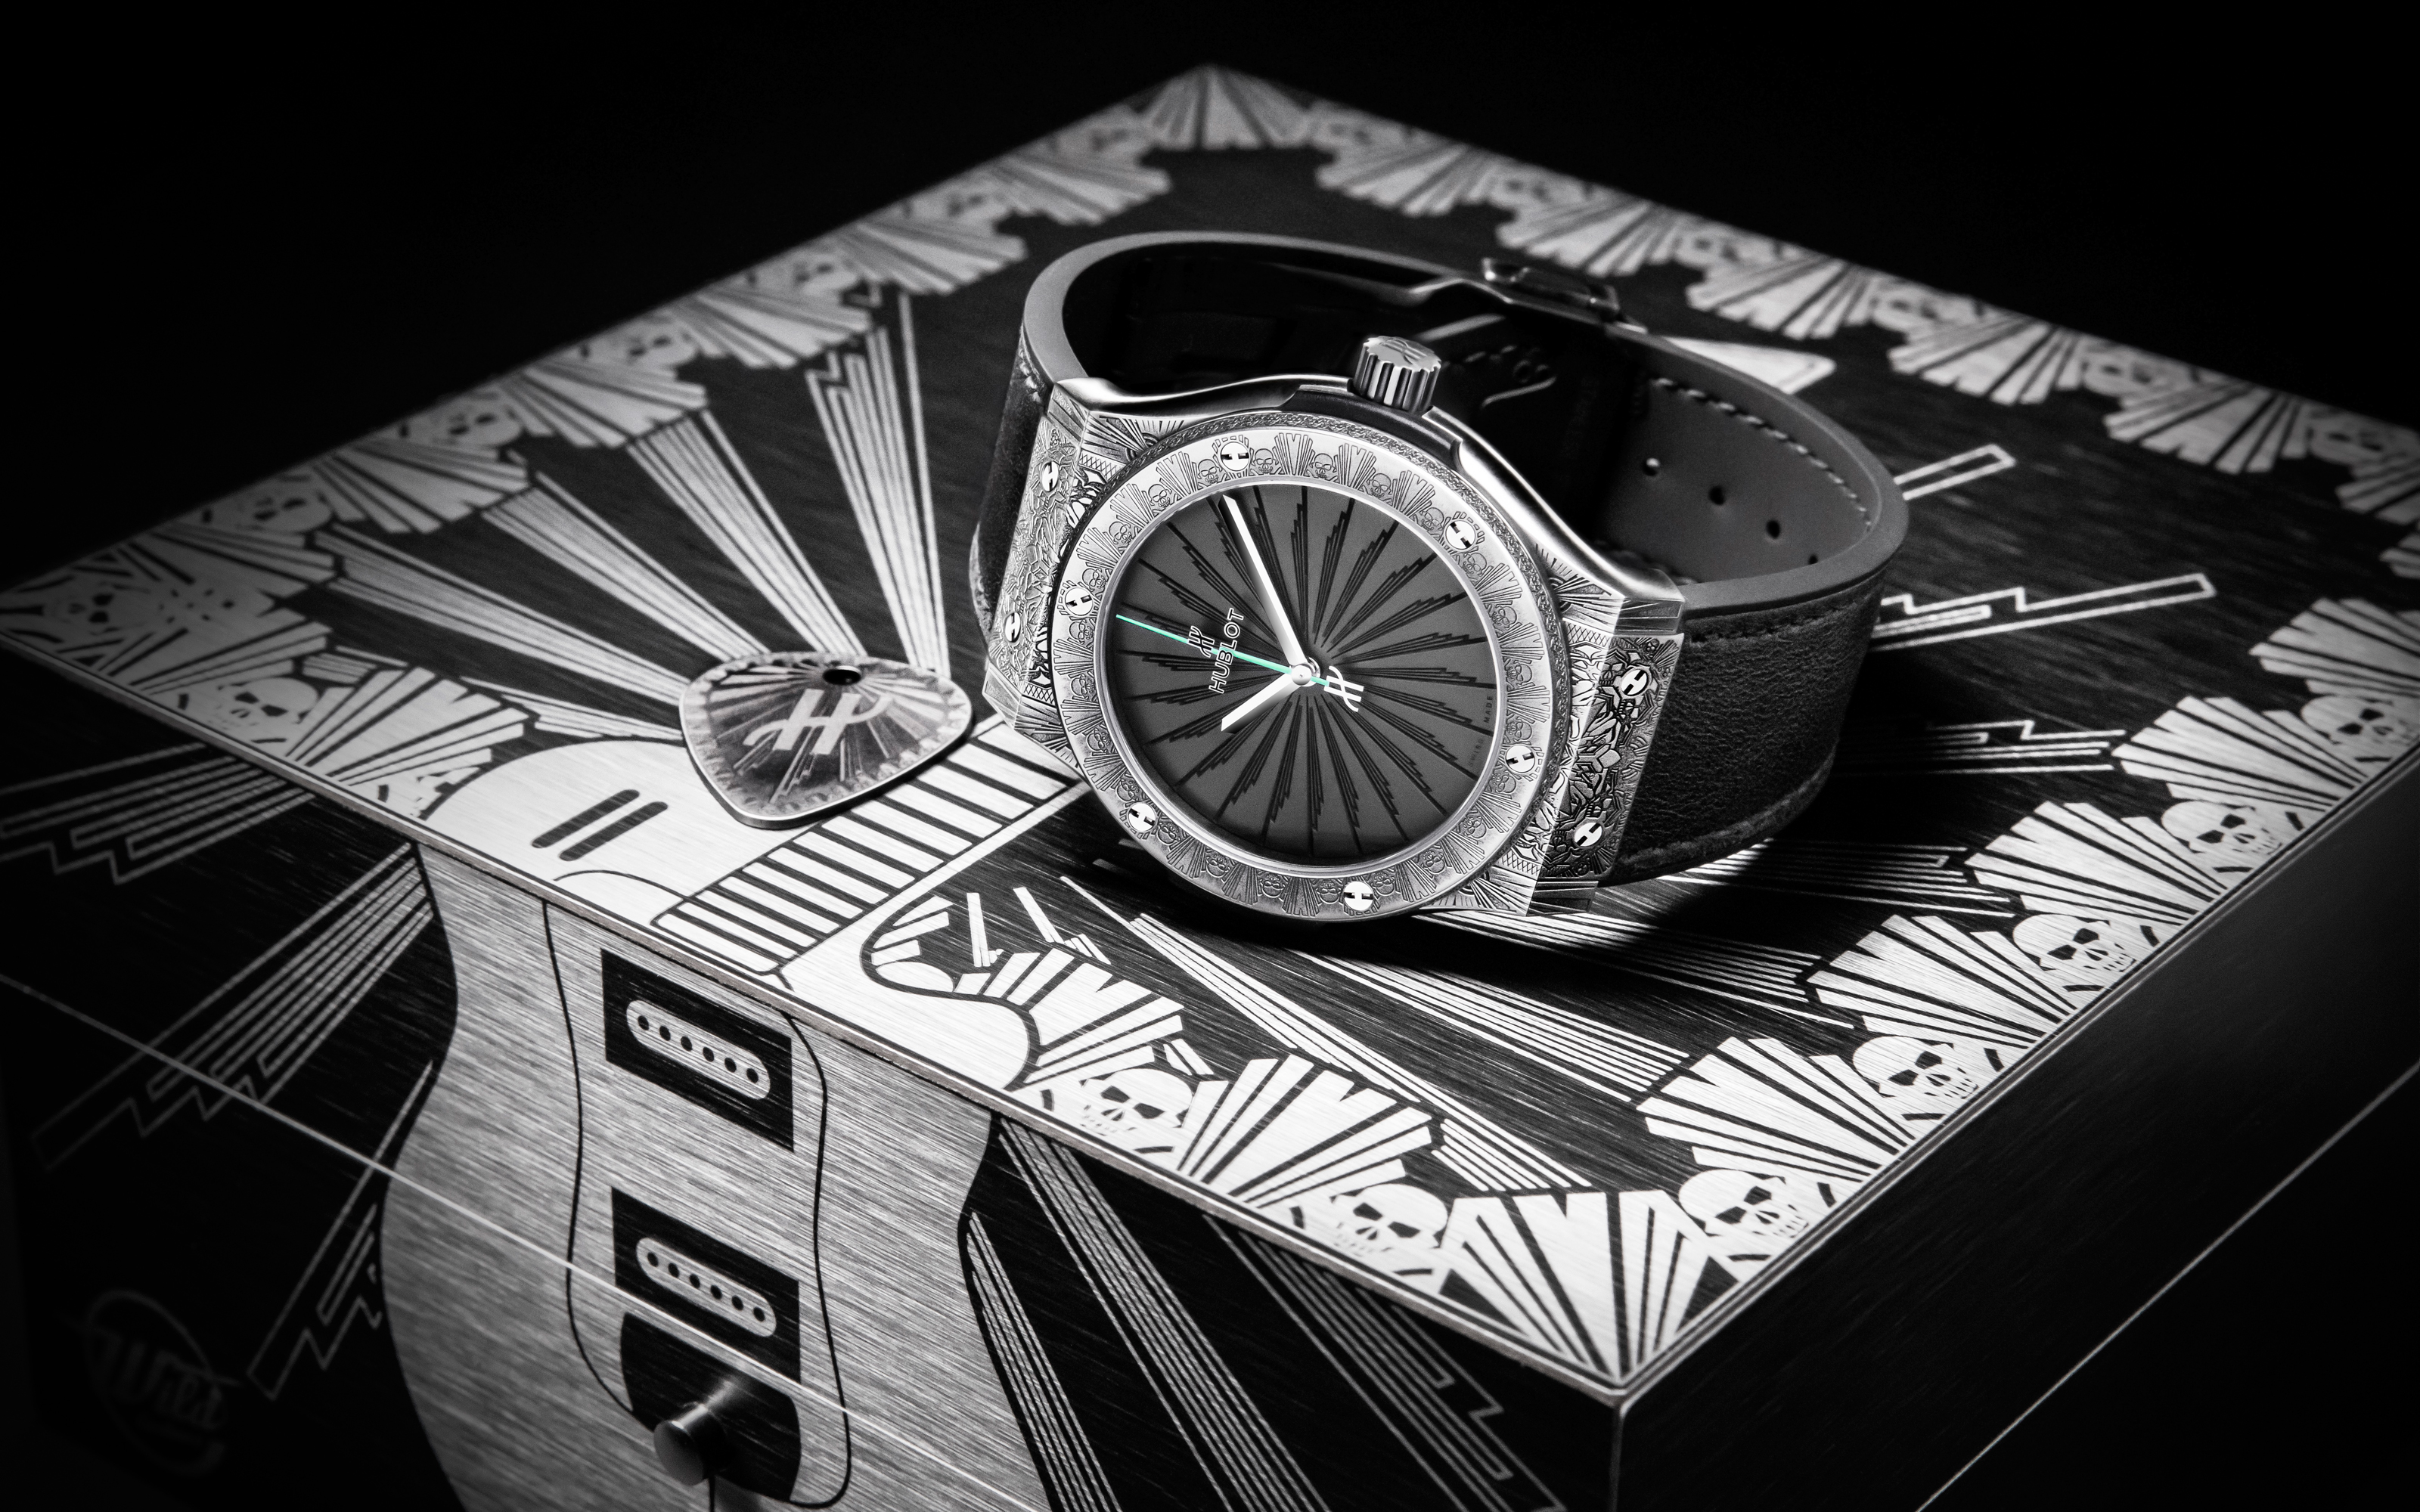 Hublot, a ritmo de rock and roll